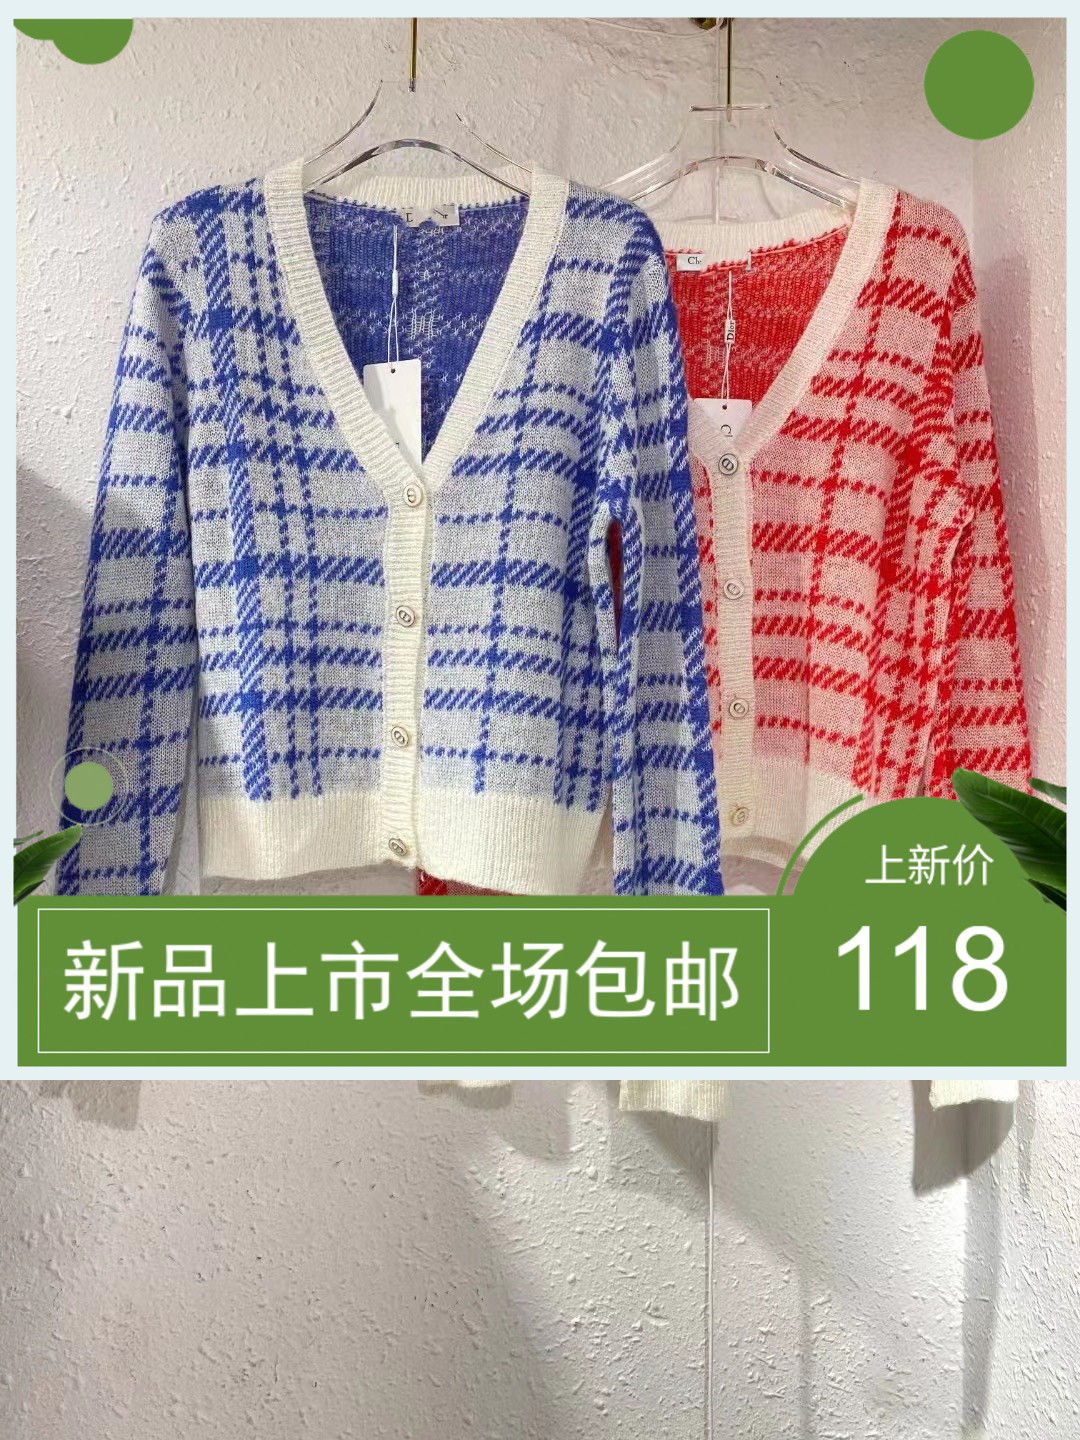 Early autumn star same Plaid contrast knitted cardigan women + vest series inlaid knitting Mohair blended 509